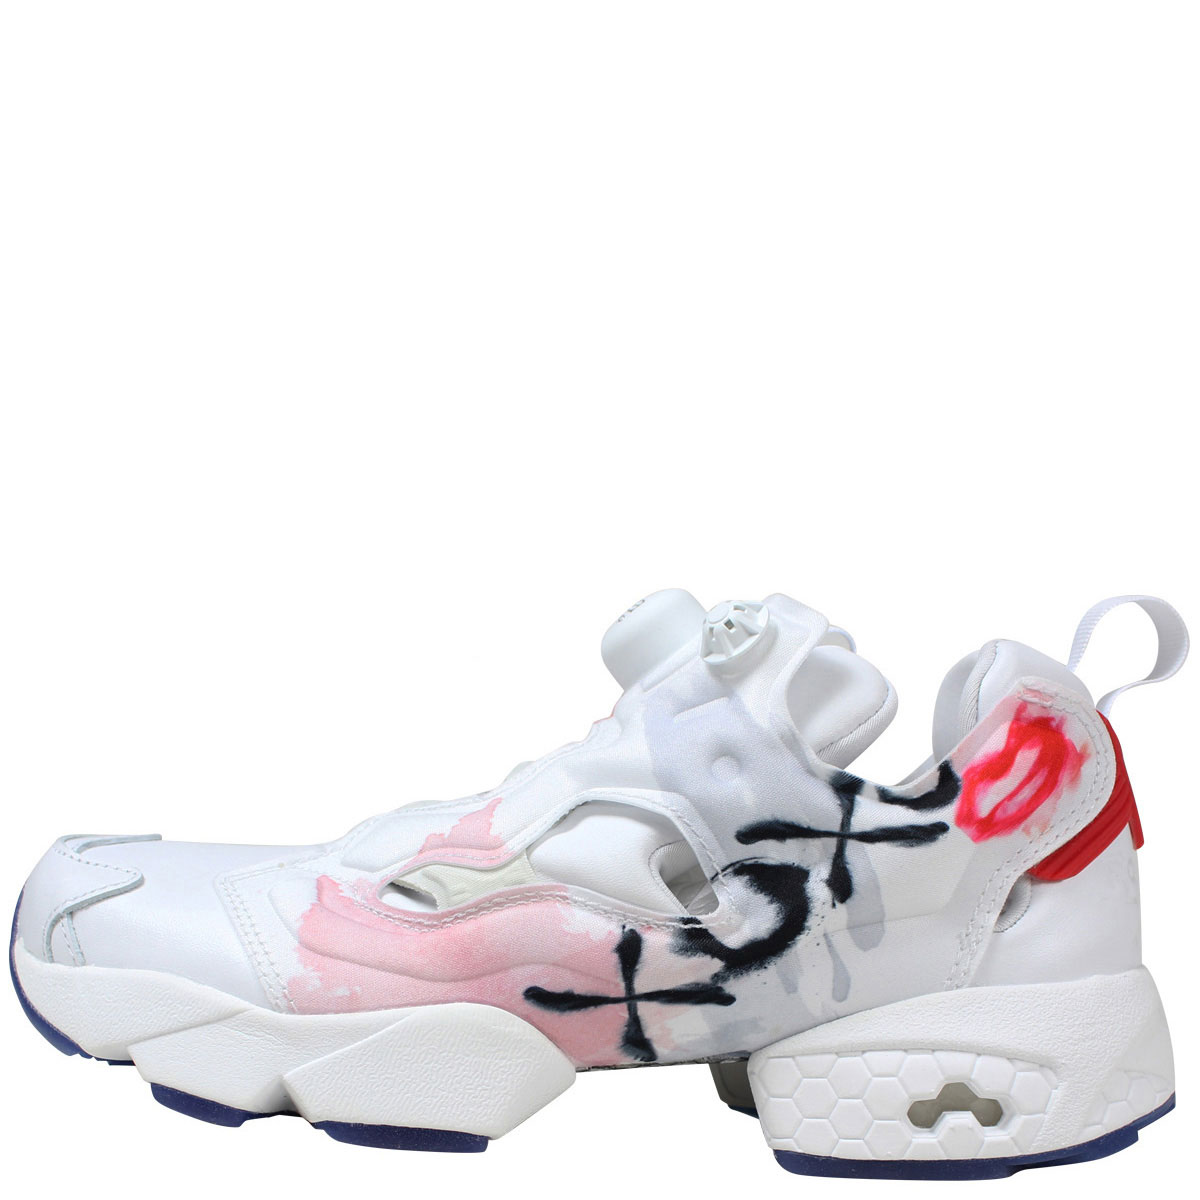 exquisite style look out for uk cheap sale Reebok リーボックポンプフューリーセレブレートスニーカーレディース INSTAPUMP FURY CELEBRATE V69142 shoes  white